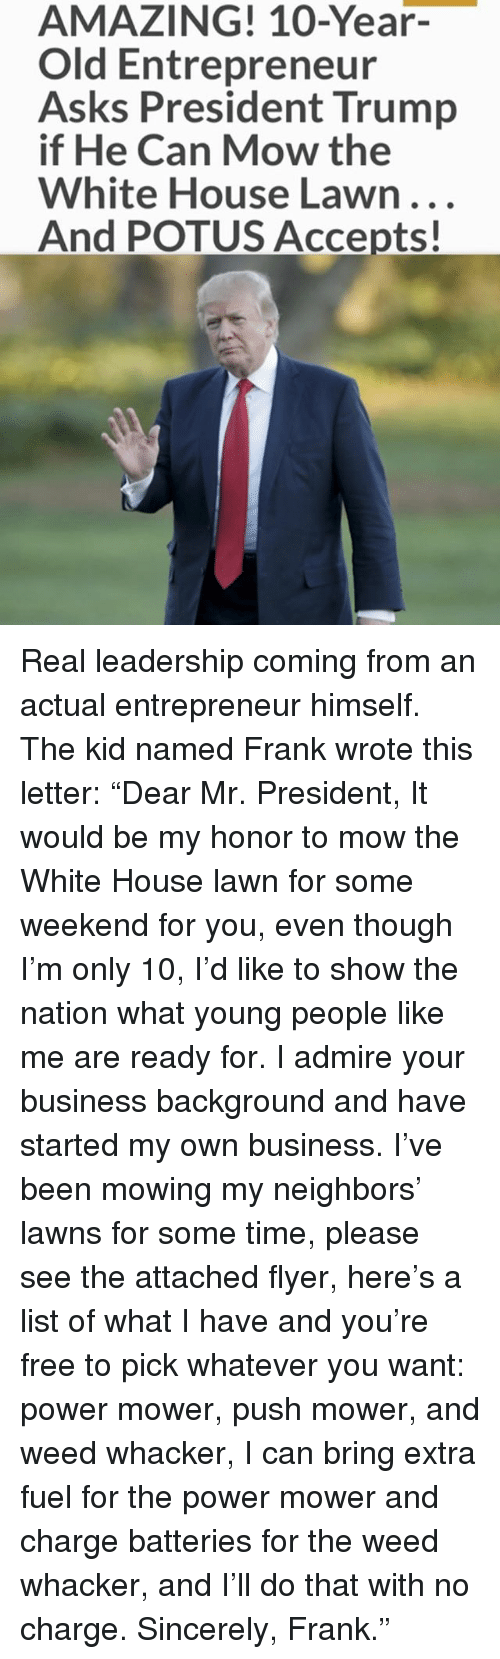 "Memes, Weed, and White House: AMAZING! 10-Year-  Old Entrepreneur  Asks President Trump  if He Can Mow the  White House Lawn...  And POTUS Accepts! Real leadership coming from an actual entrepreneur himself. The kid named Frank wrote this letter: ""Dear Mr. President, It would be my honor to mow the White House lawn for some weekend for you, even though I'm only 10, I'd like to show the nation what young people like me are ready for. I admire your business background and have started my own business. I've been mowing my neighbors' lawns for some time, please see the attached flyer, here's a list of what I have and you're free to pick whatever you want: power mower, push mower, and weed whacker, I can bring extra fuel for the power mower and charge batteries for the weed whacker, and I'll do that with no charge. Sincerely, Frank."""